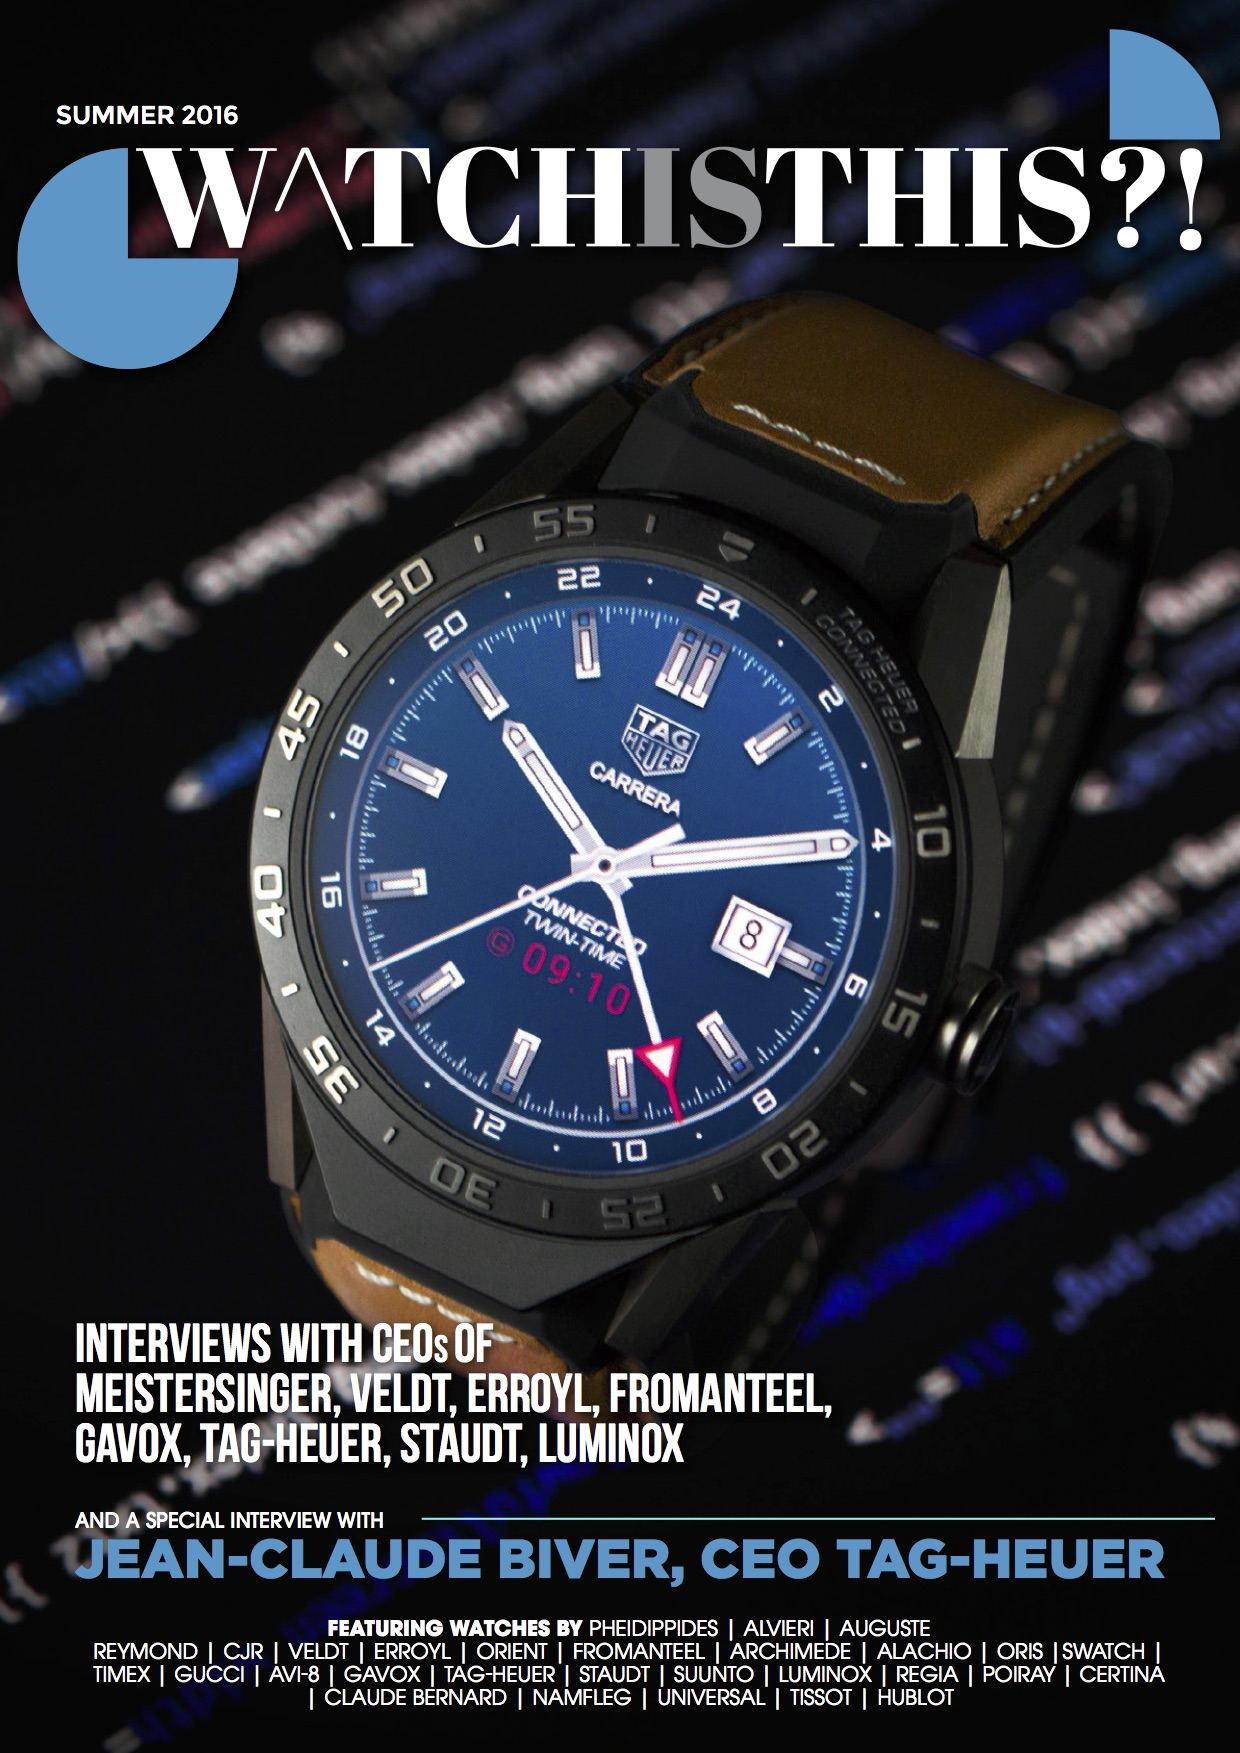 Latest Issue Watchisthis?! Magazine Out Now!